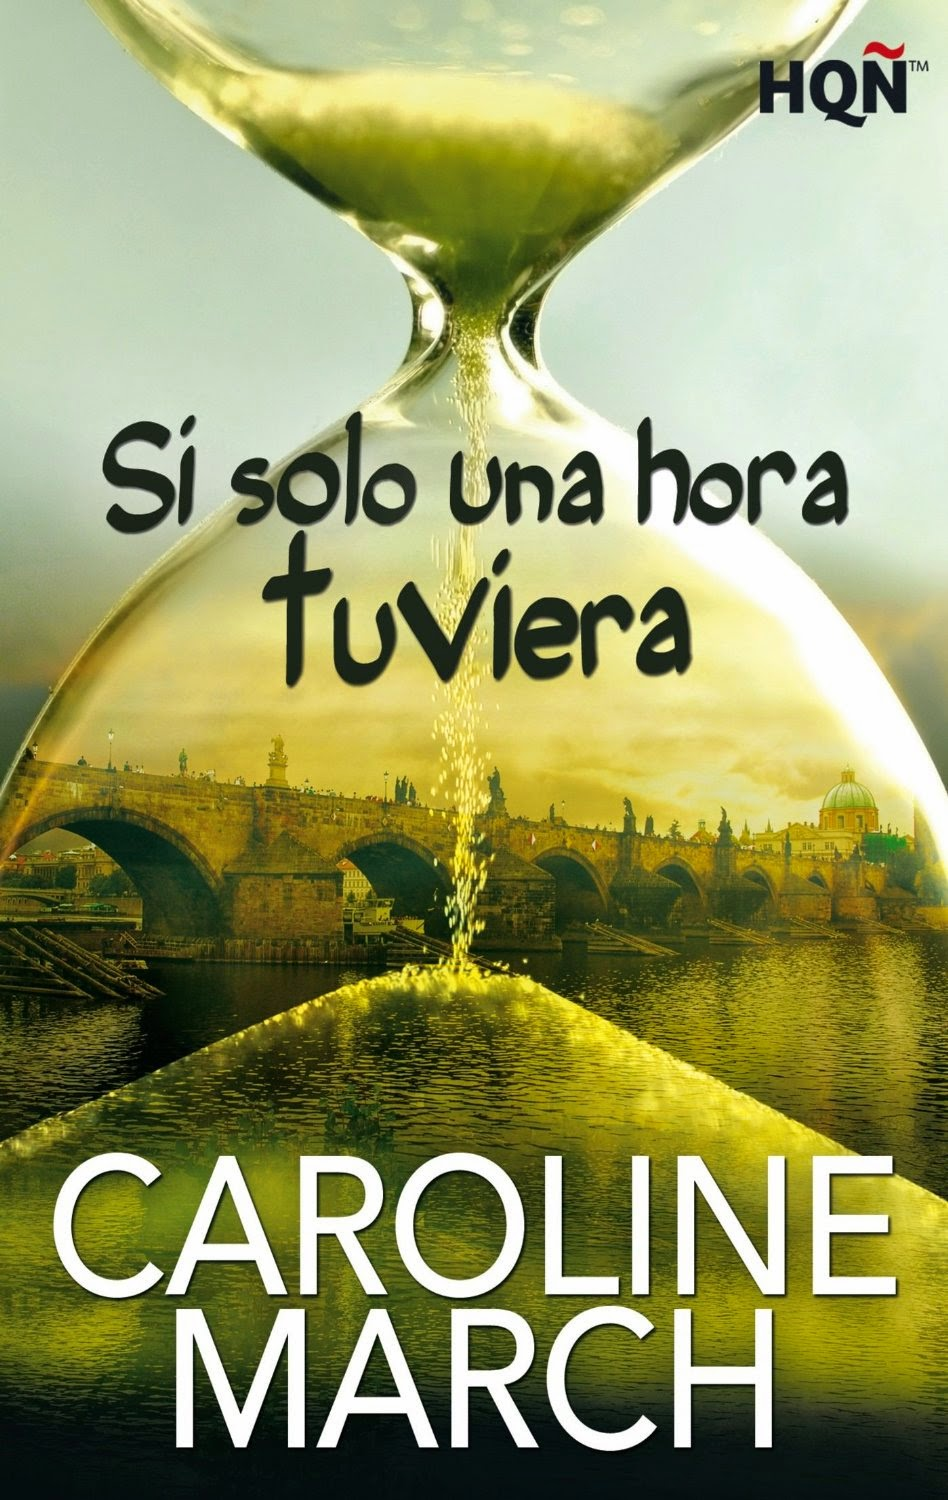 si solo hora tuviera caroline march